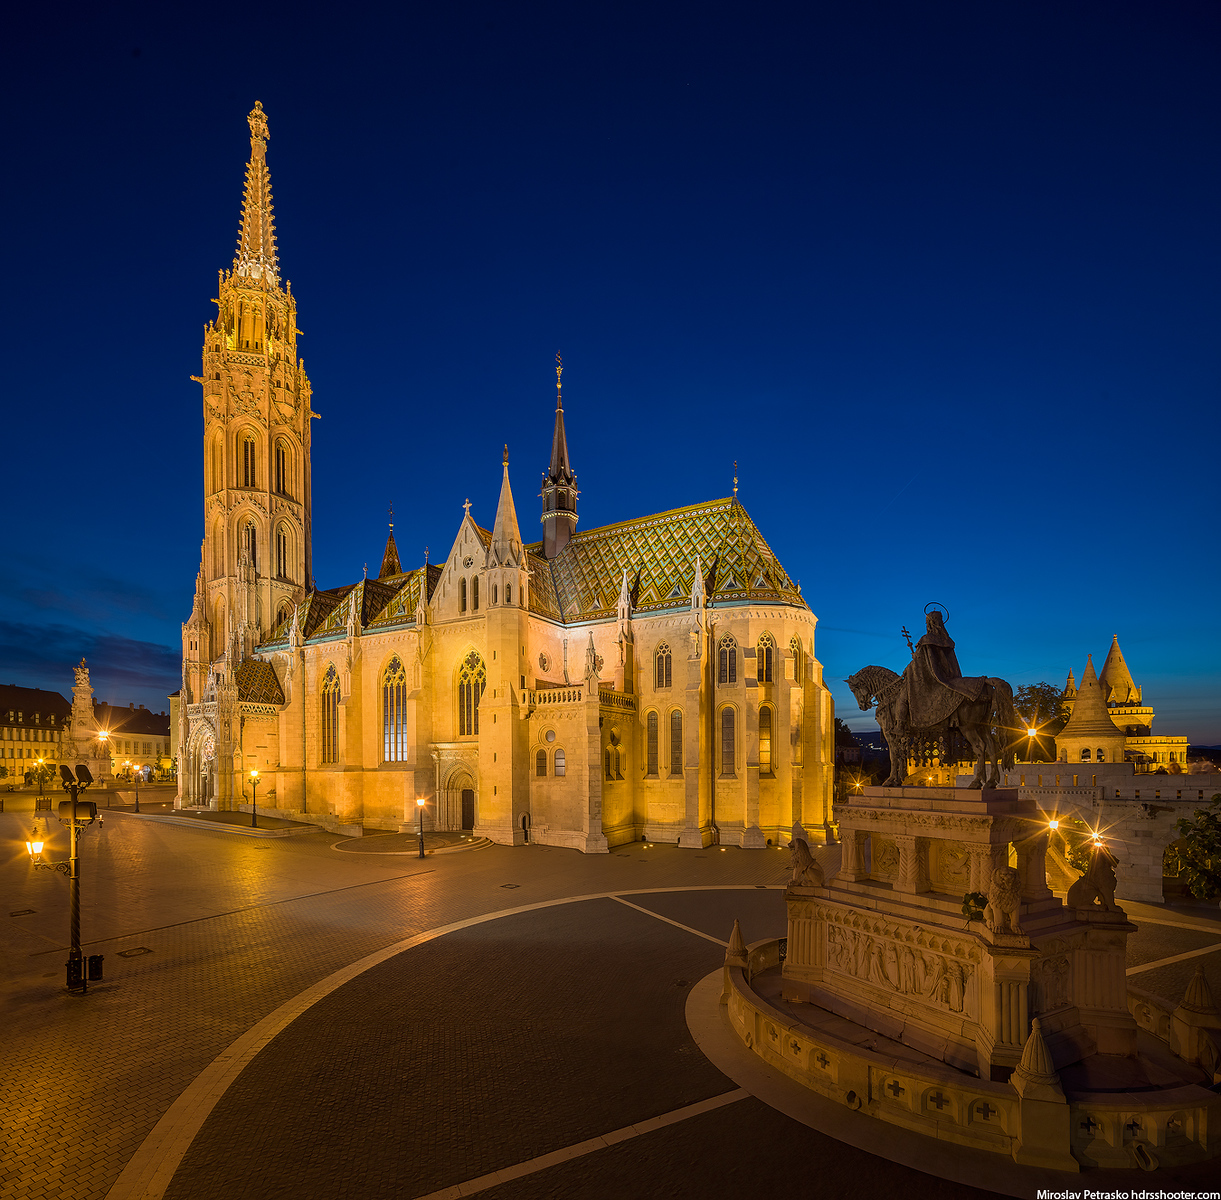 Evening at the Matthias Church